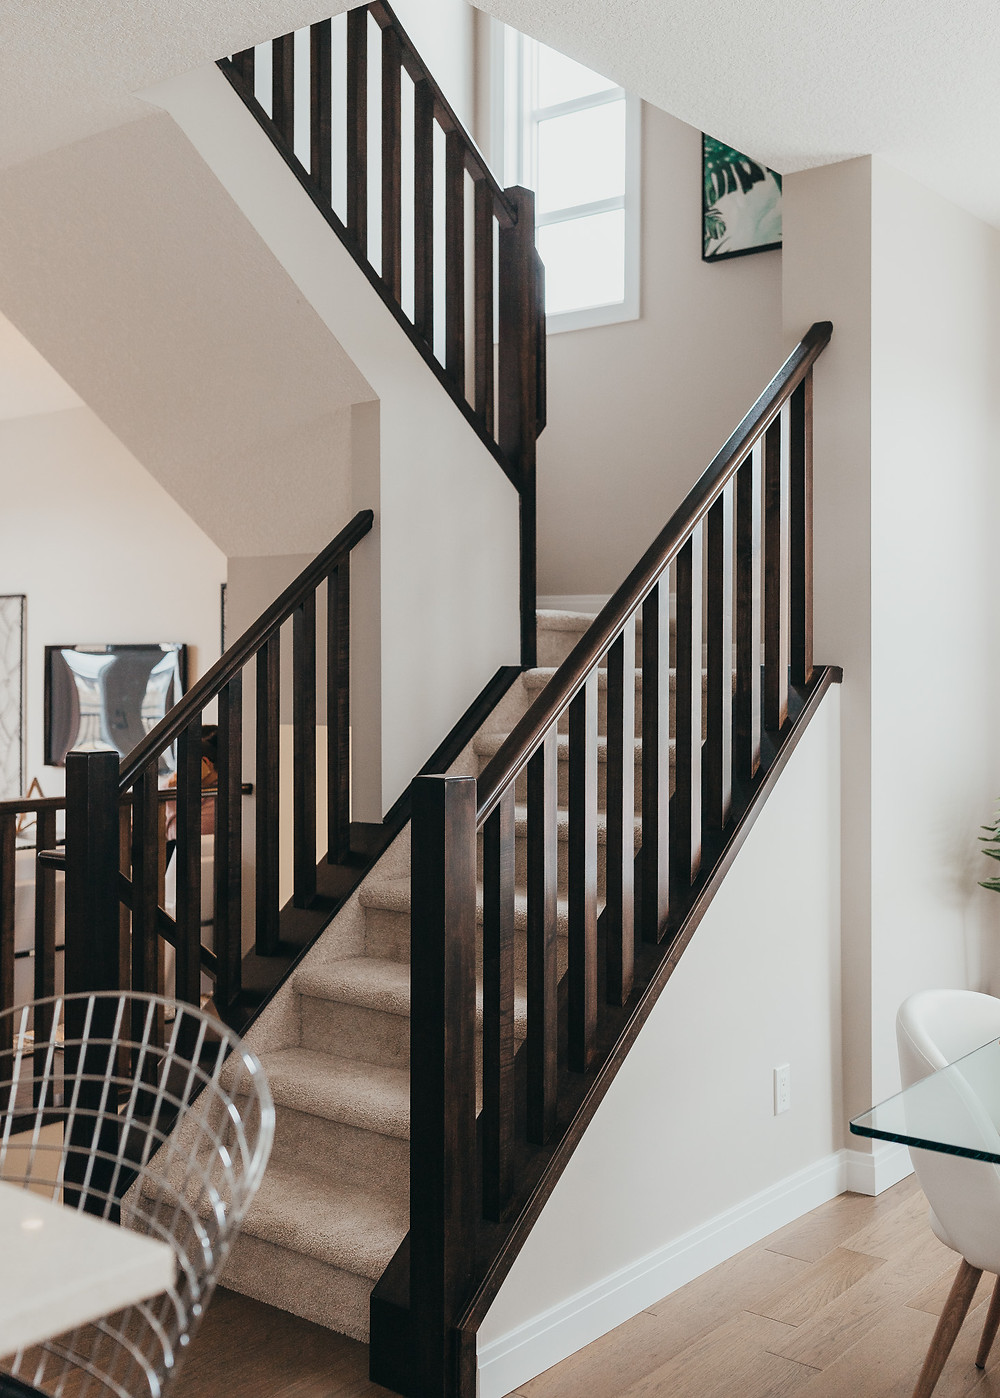 A dark wooden staircase in a new home.